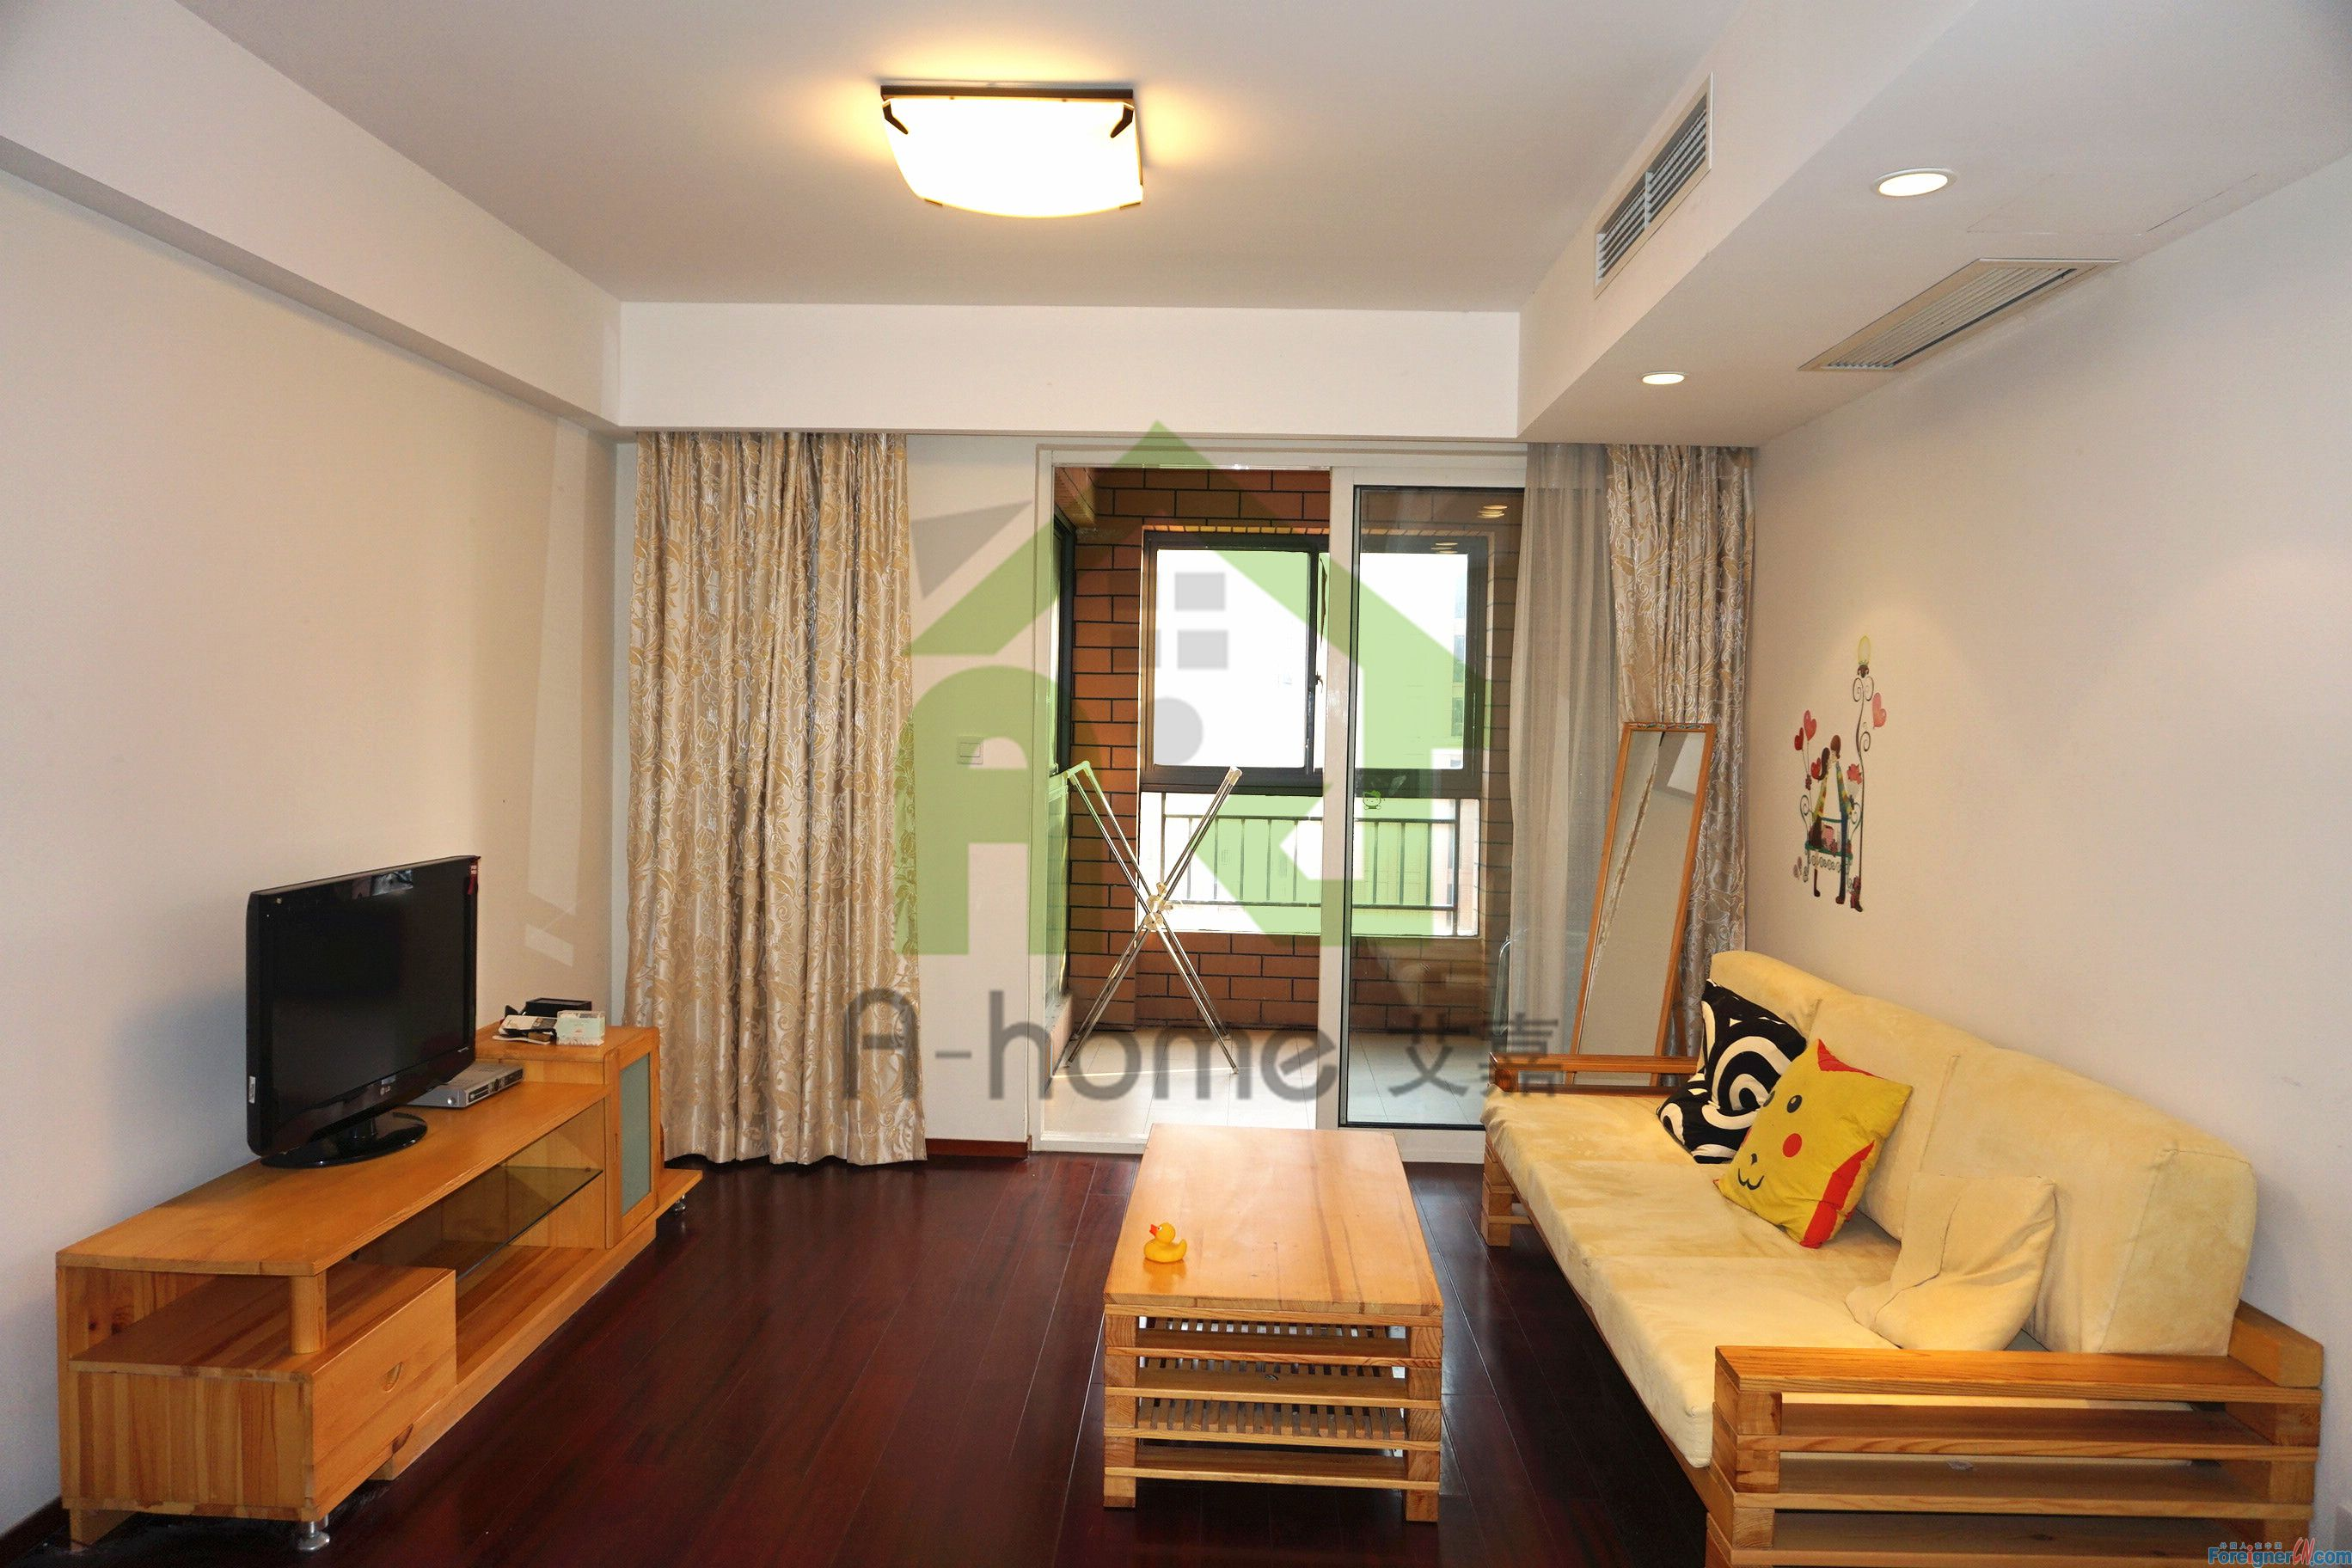 Times square, nice 2br only 4000CNY, well kept, close to metro ,international school